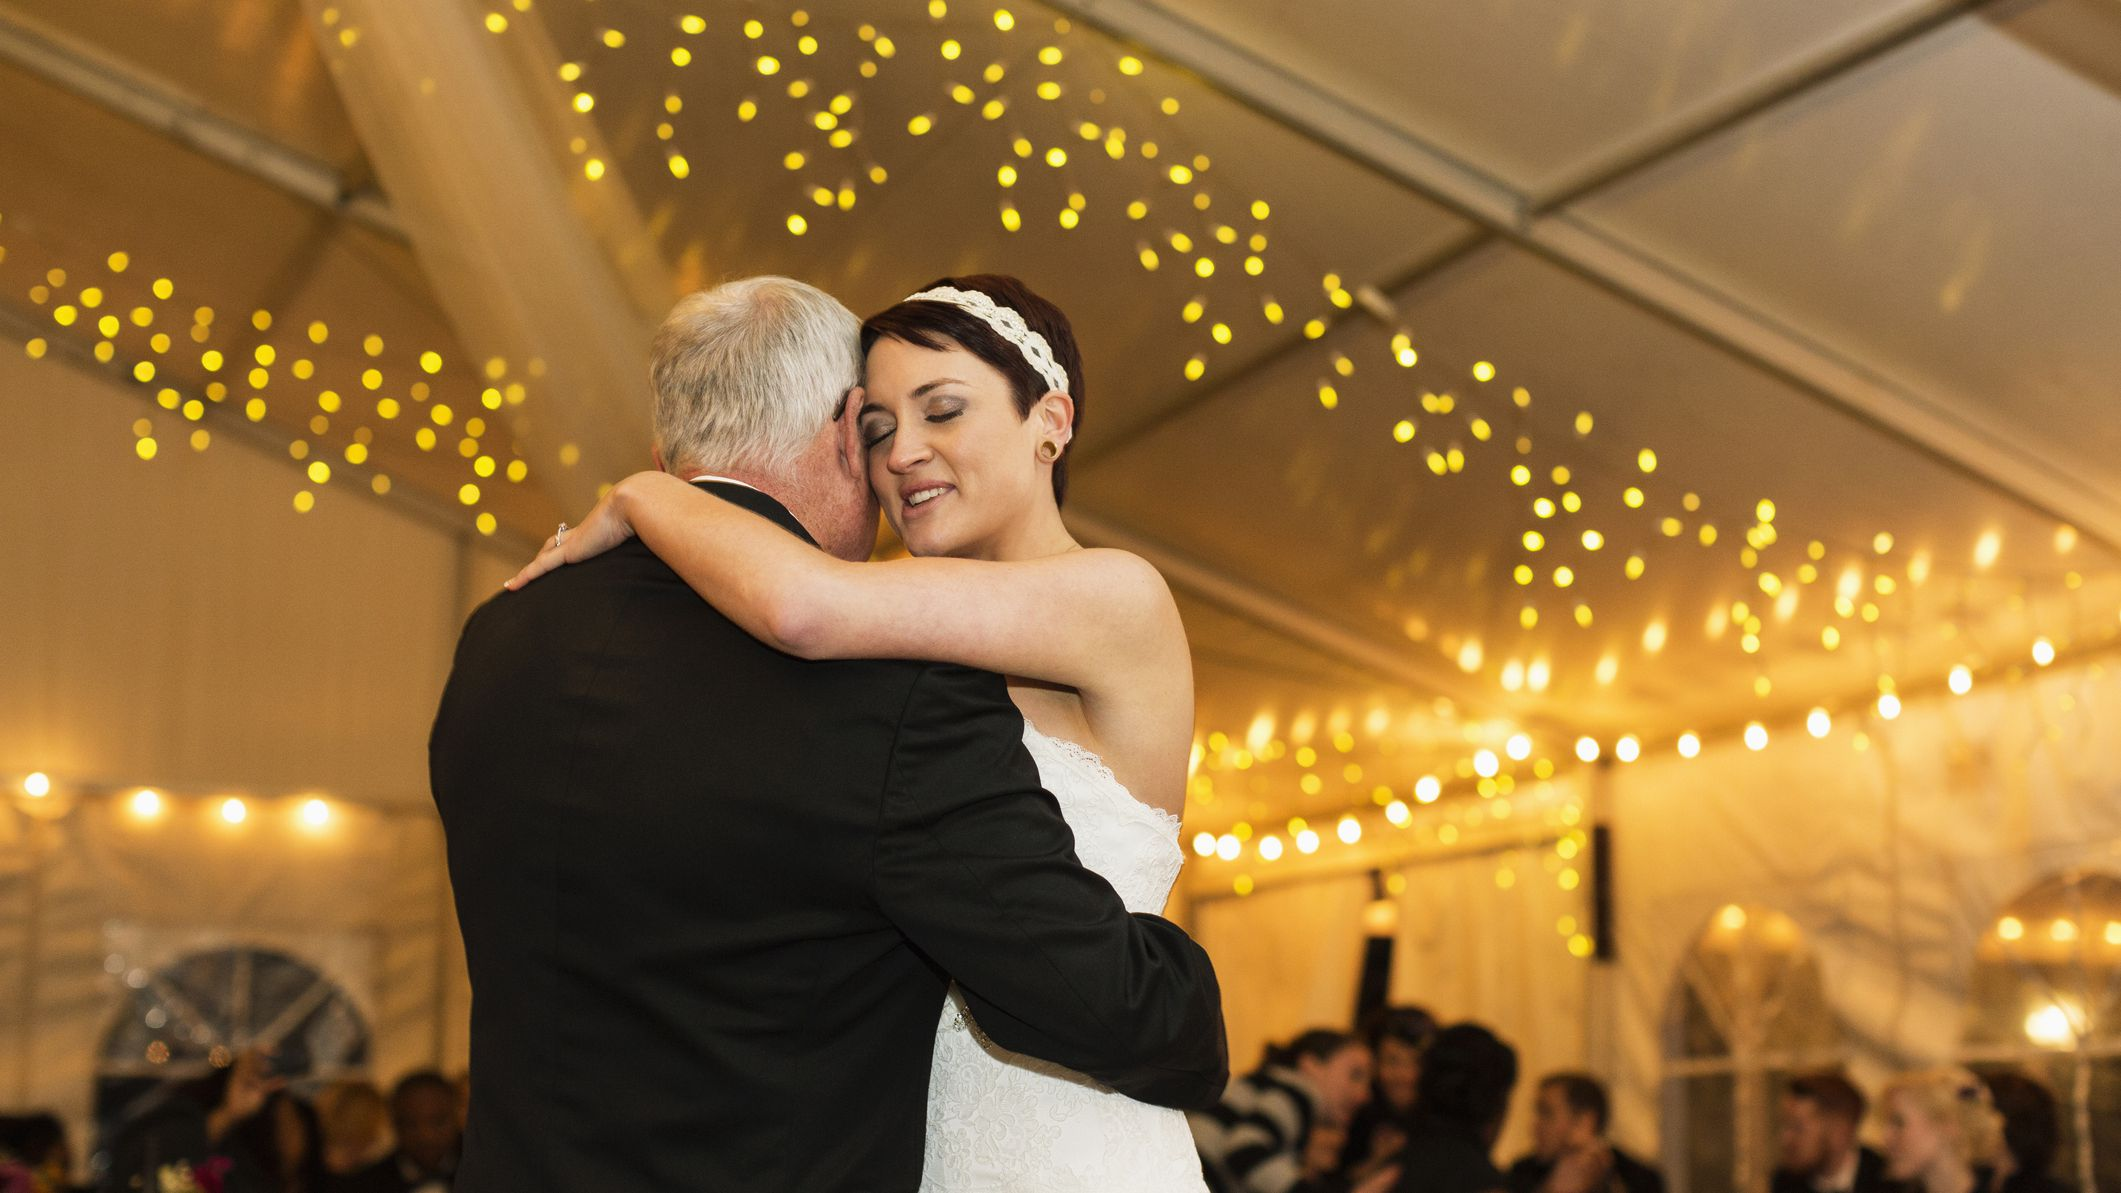 Top Songs For A Father Daughter Dance